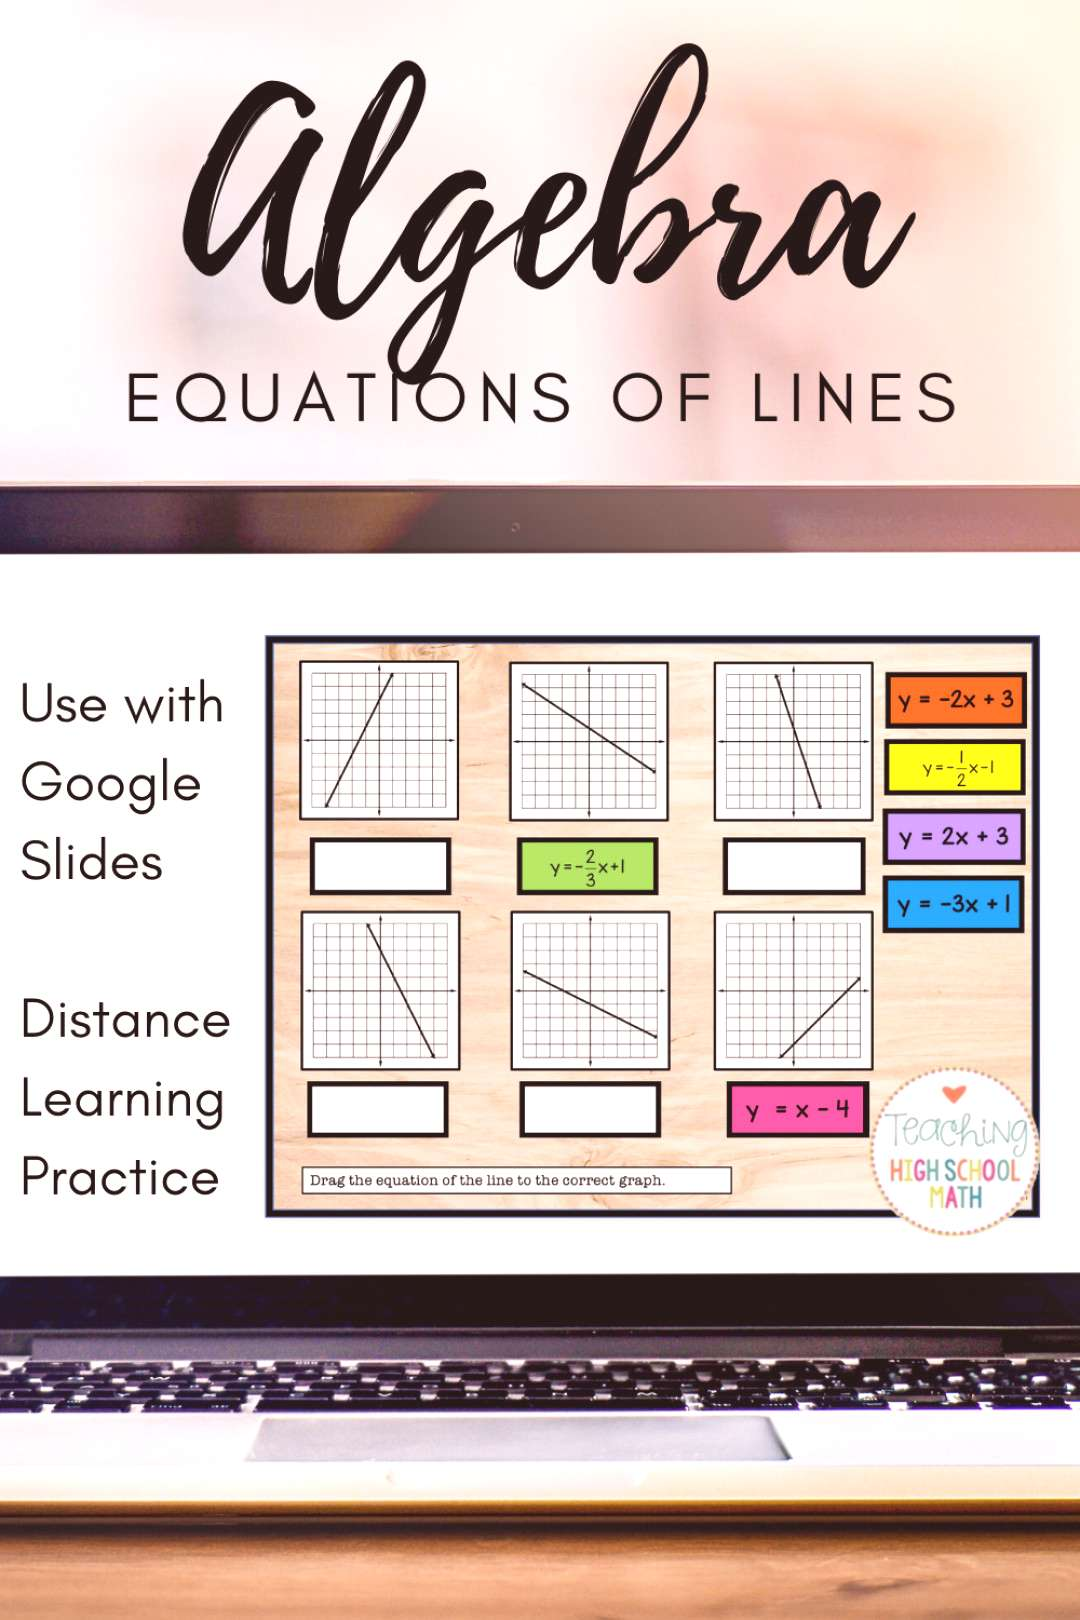 Algebra Writing Equations of Lines - Digital This set will help your students practice writing equa